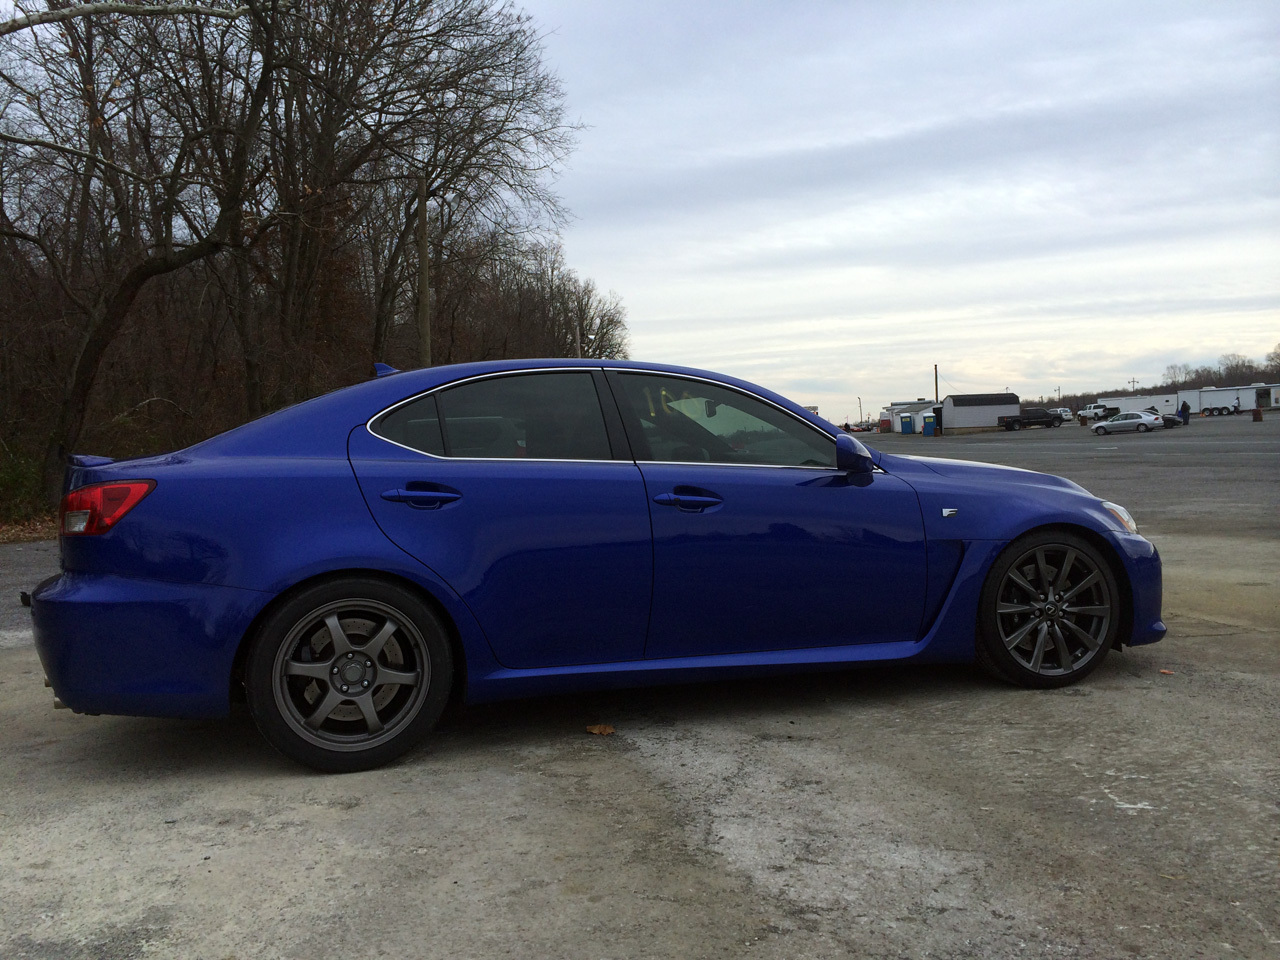 2008 Blue Lexus IS-F  picture, mods, upgrades